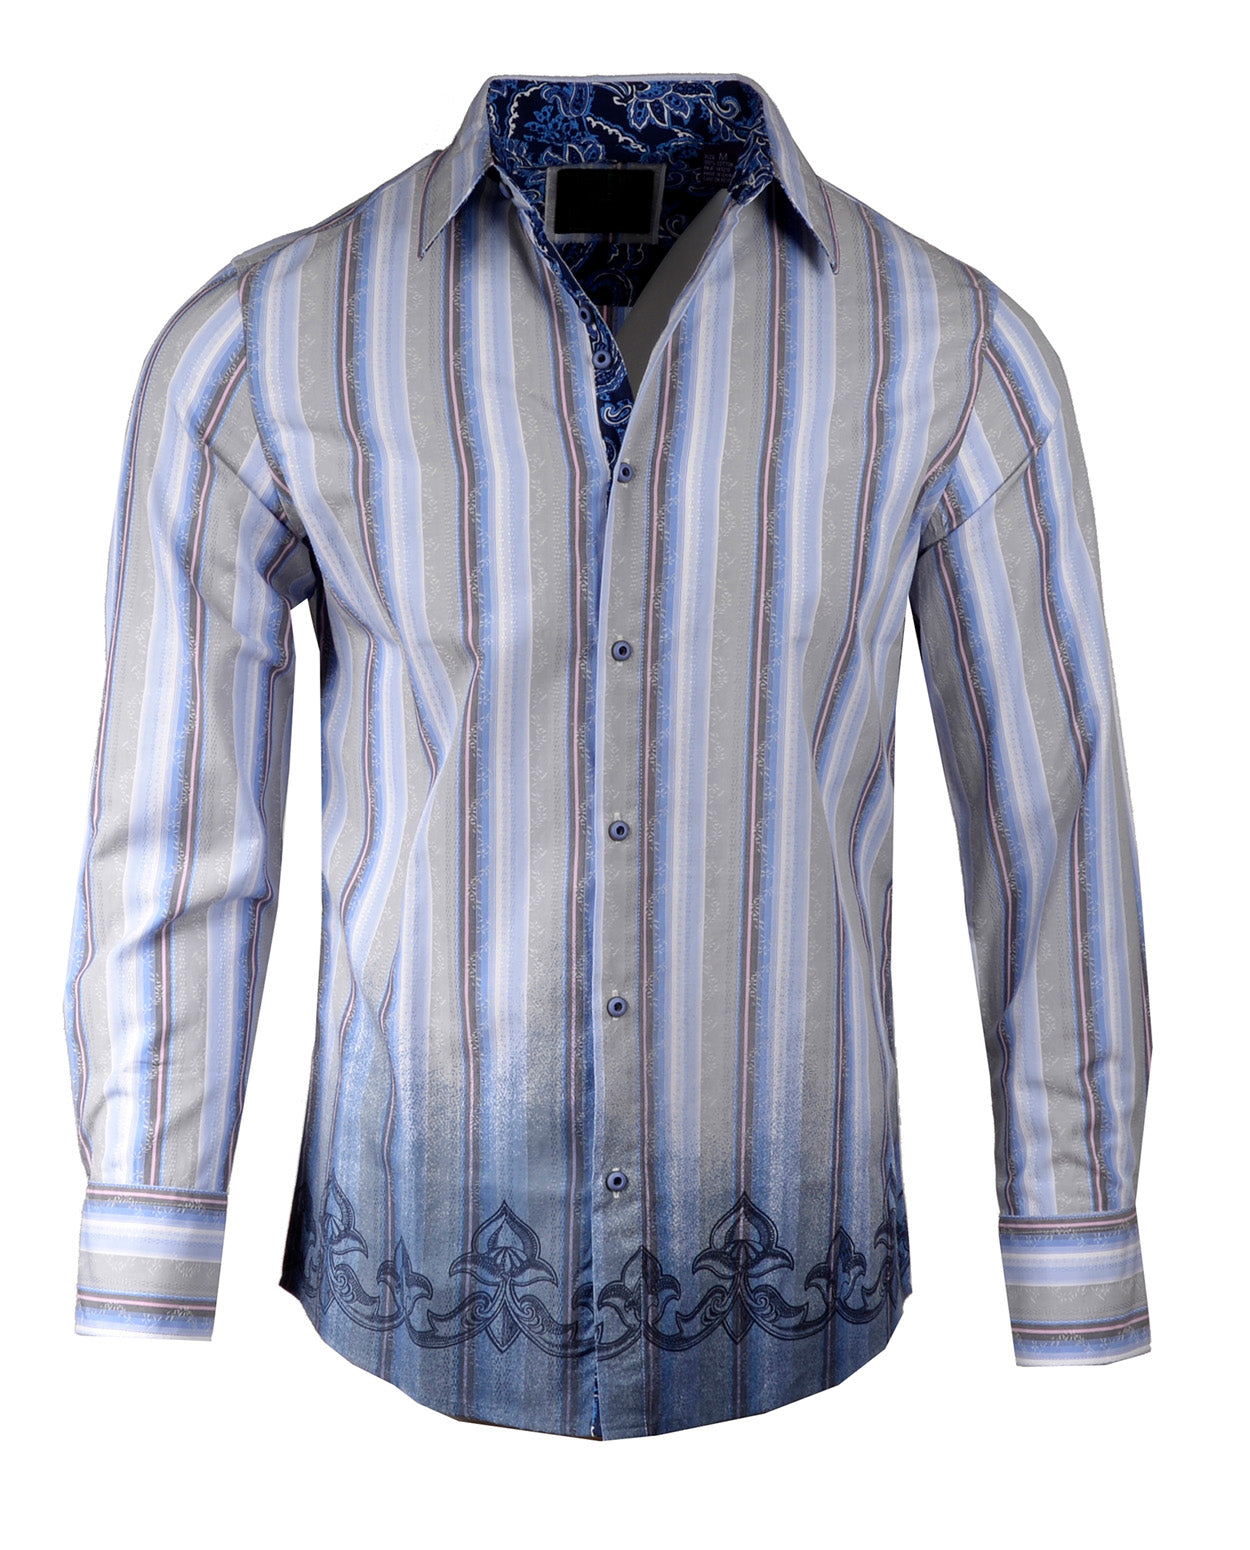 Men's Casual Fashion Button Up Shirt - 'Bridge over Troubled Water' Dip dyed by Rock Roll n Soul